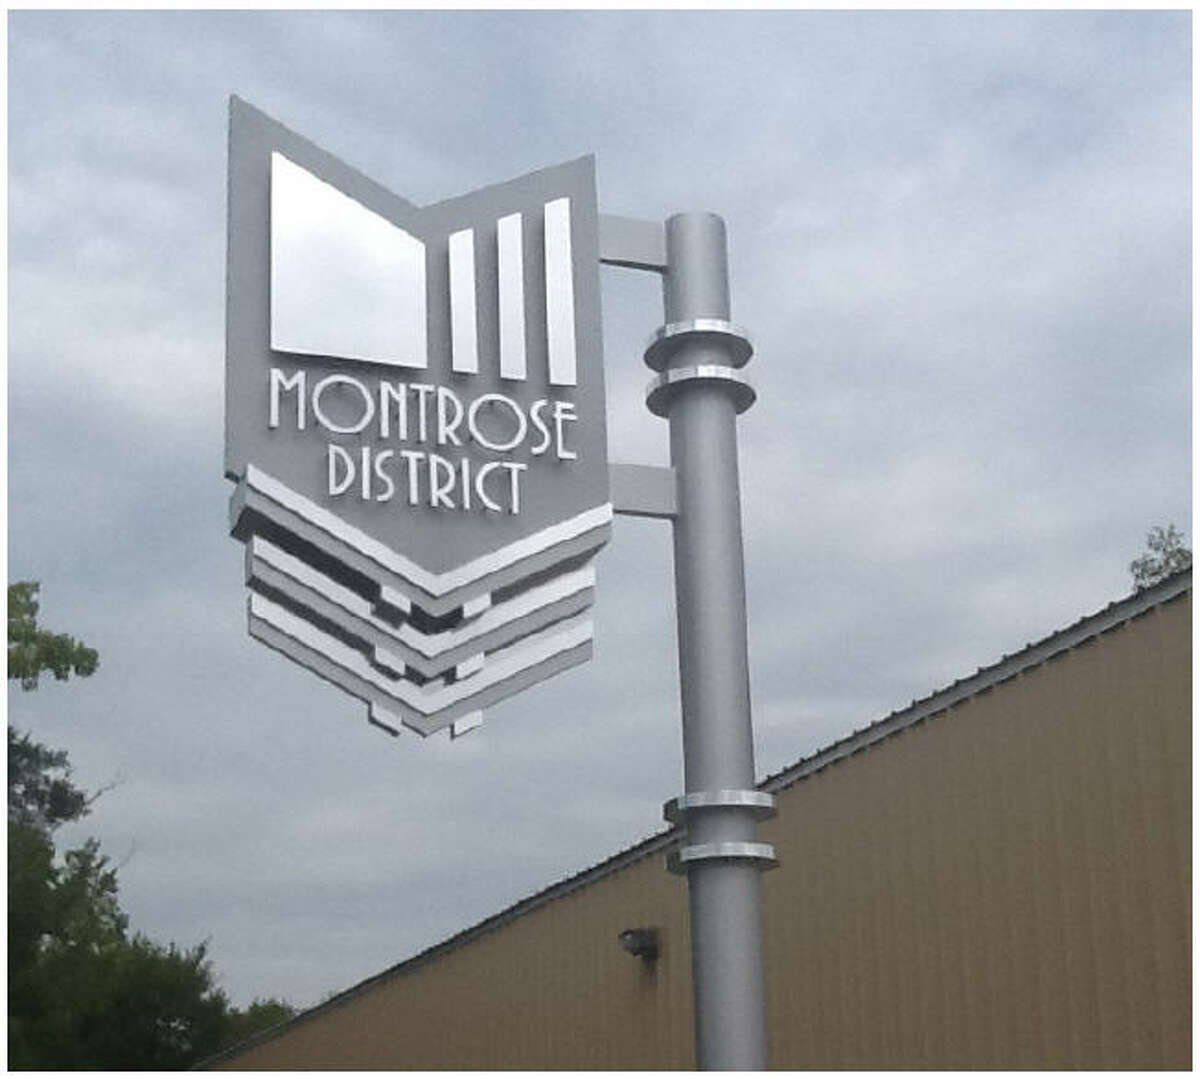 New signage and lights will be coming to the Montrose area with the first signage set for completion within the first few months of 2016 and bigger projects, such as lights over U.S. 59, scheduled for completion prior to 2017's Super Bowl in Houston. (photo courtesy Montrose Management District)